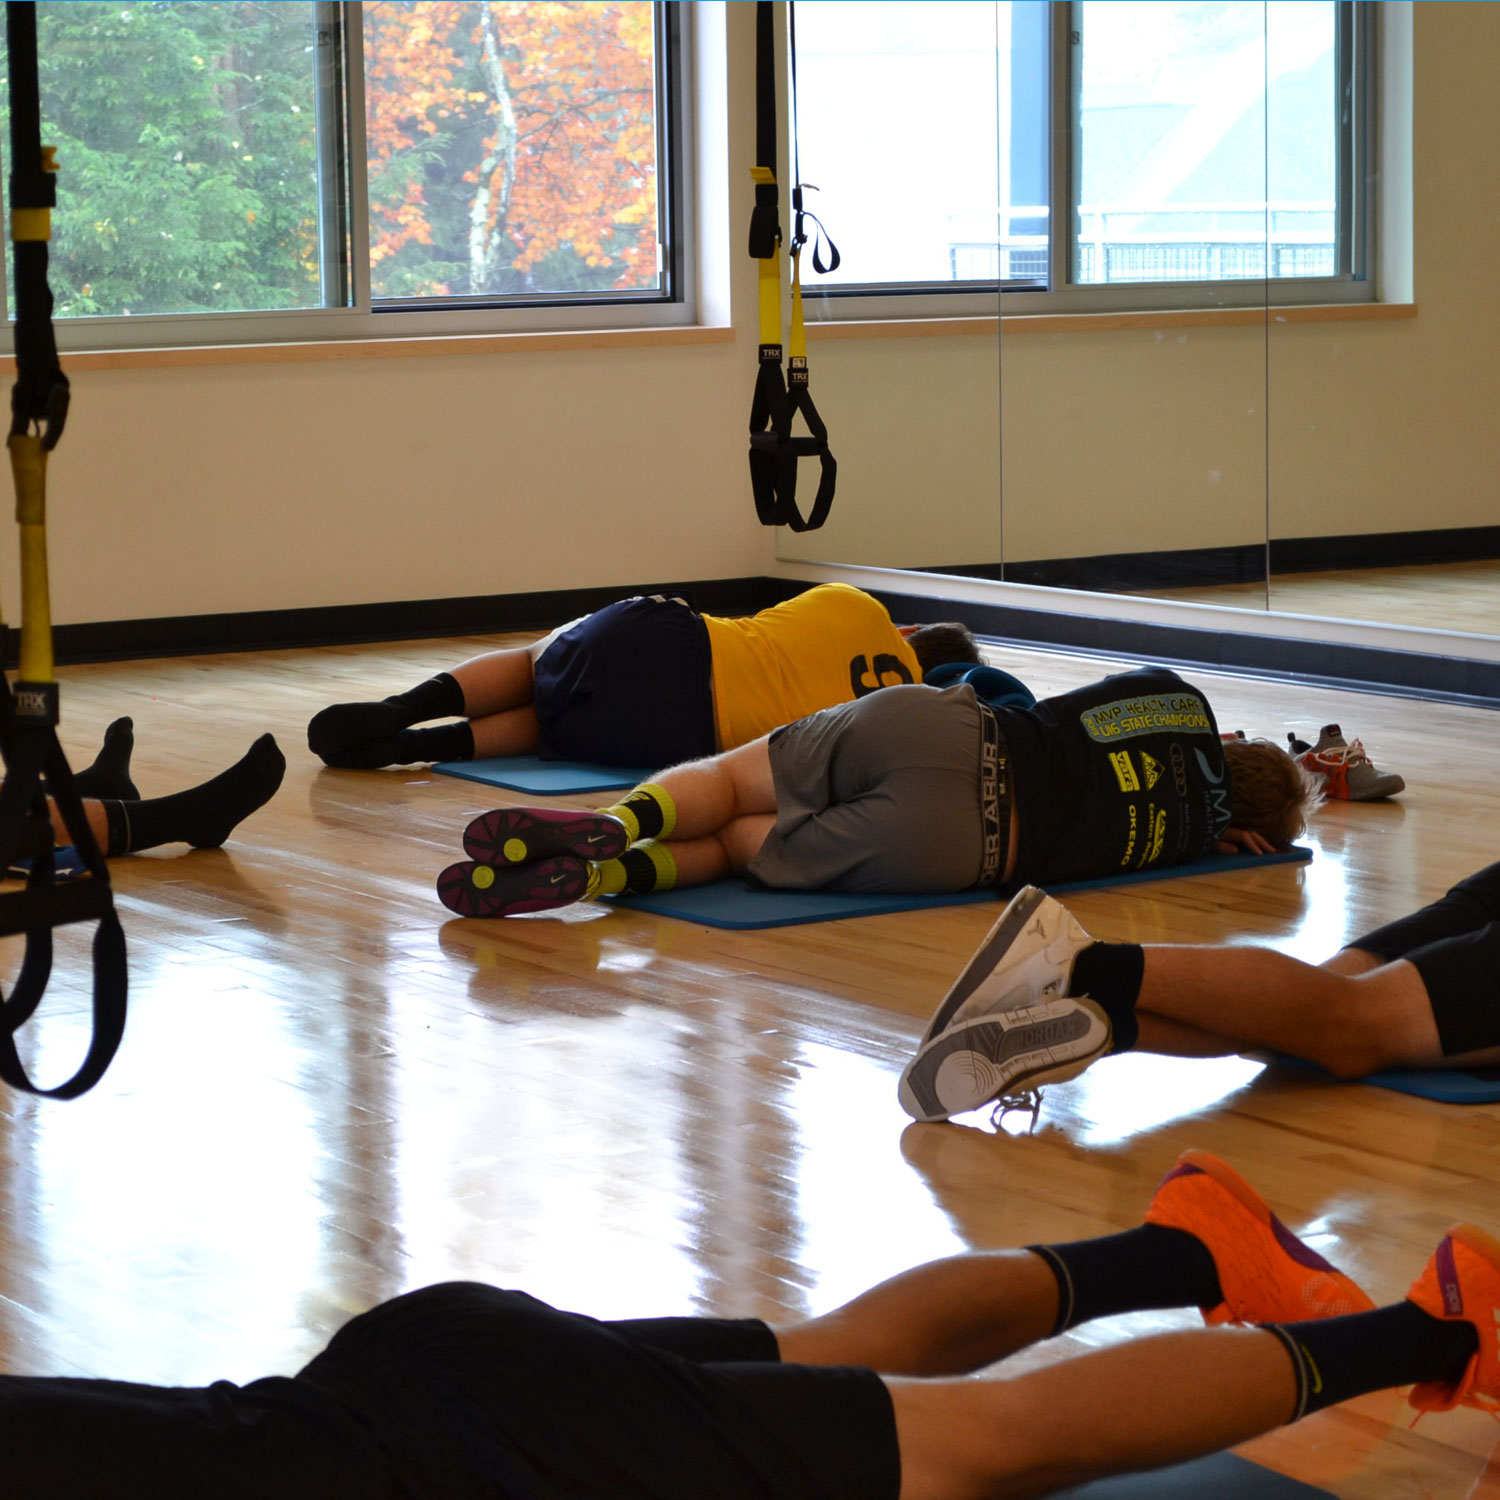 Athletes stretch out in the yoga studio space outfitted with TRX equipment.